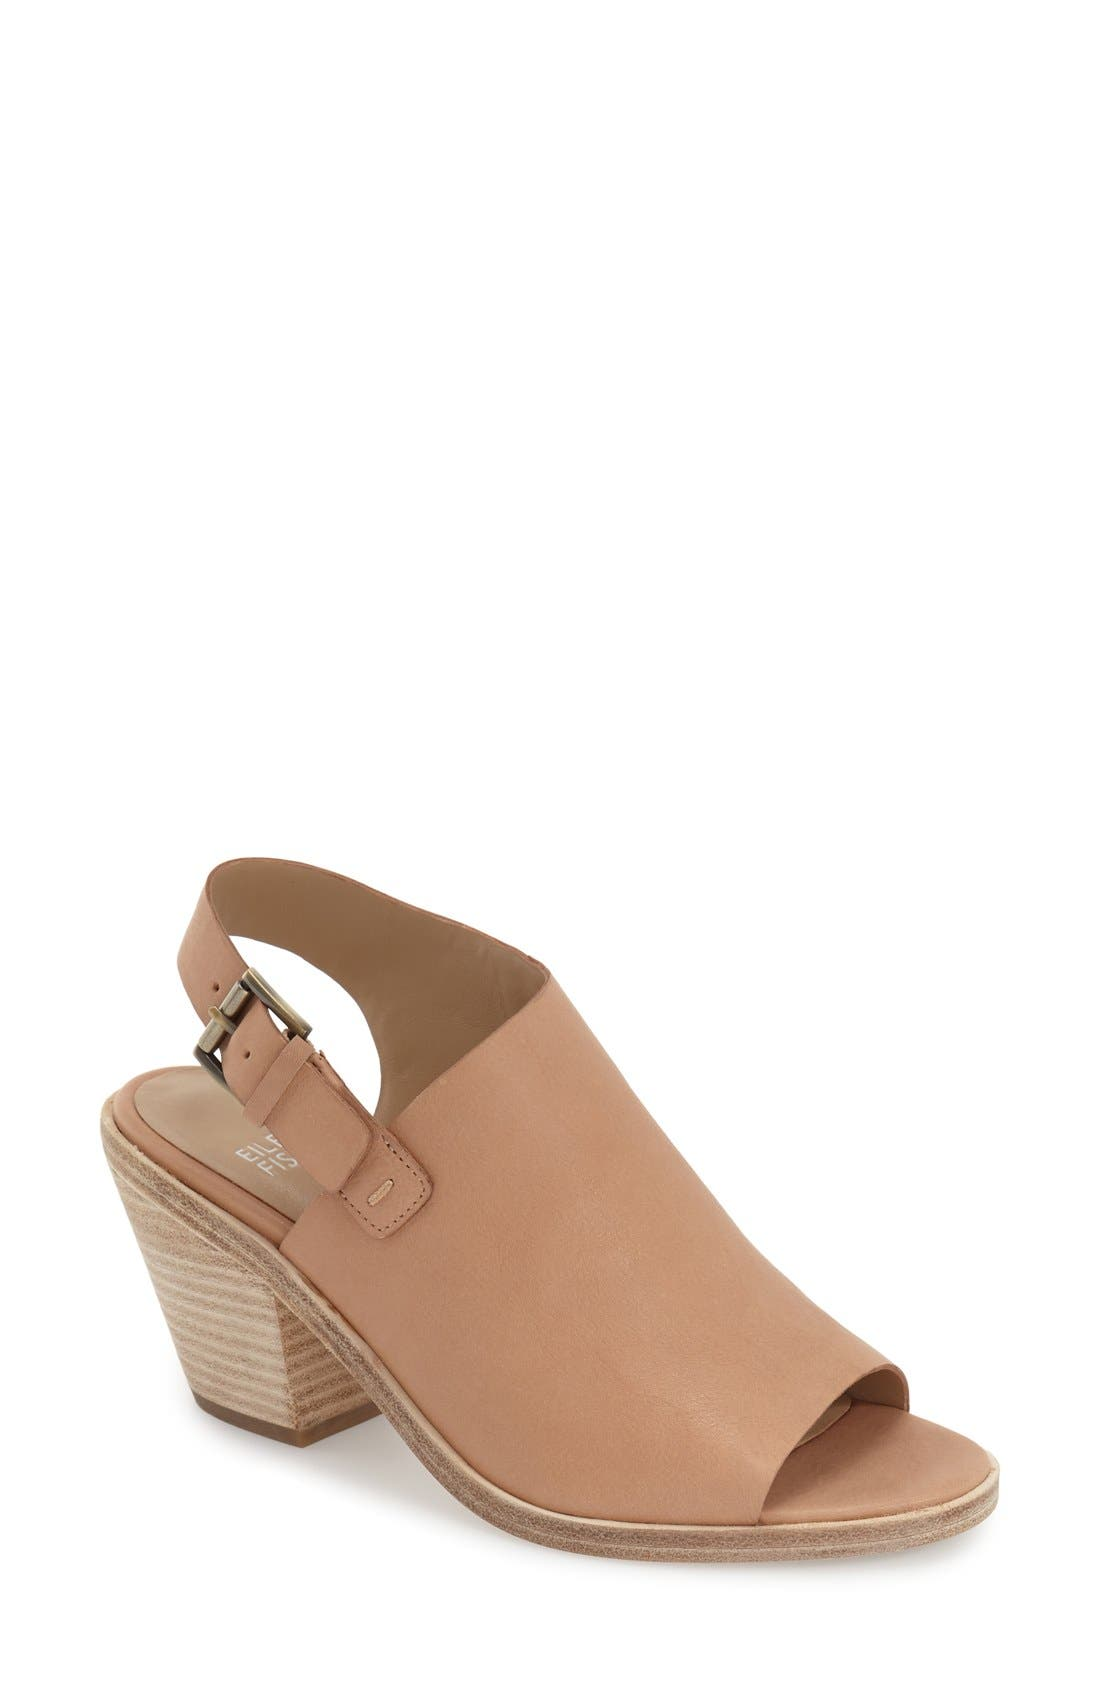 Main Image - Eileen Fisher 'Glance' Sandal (Women)